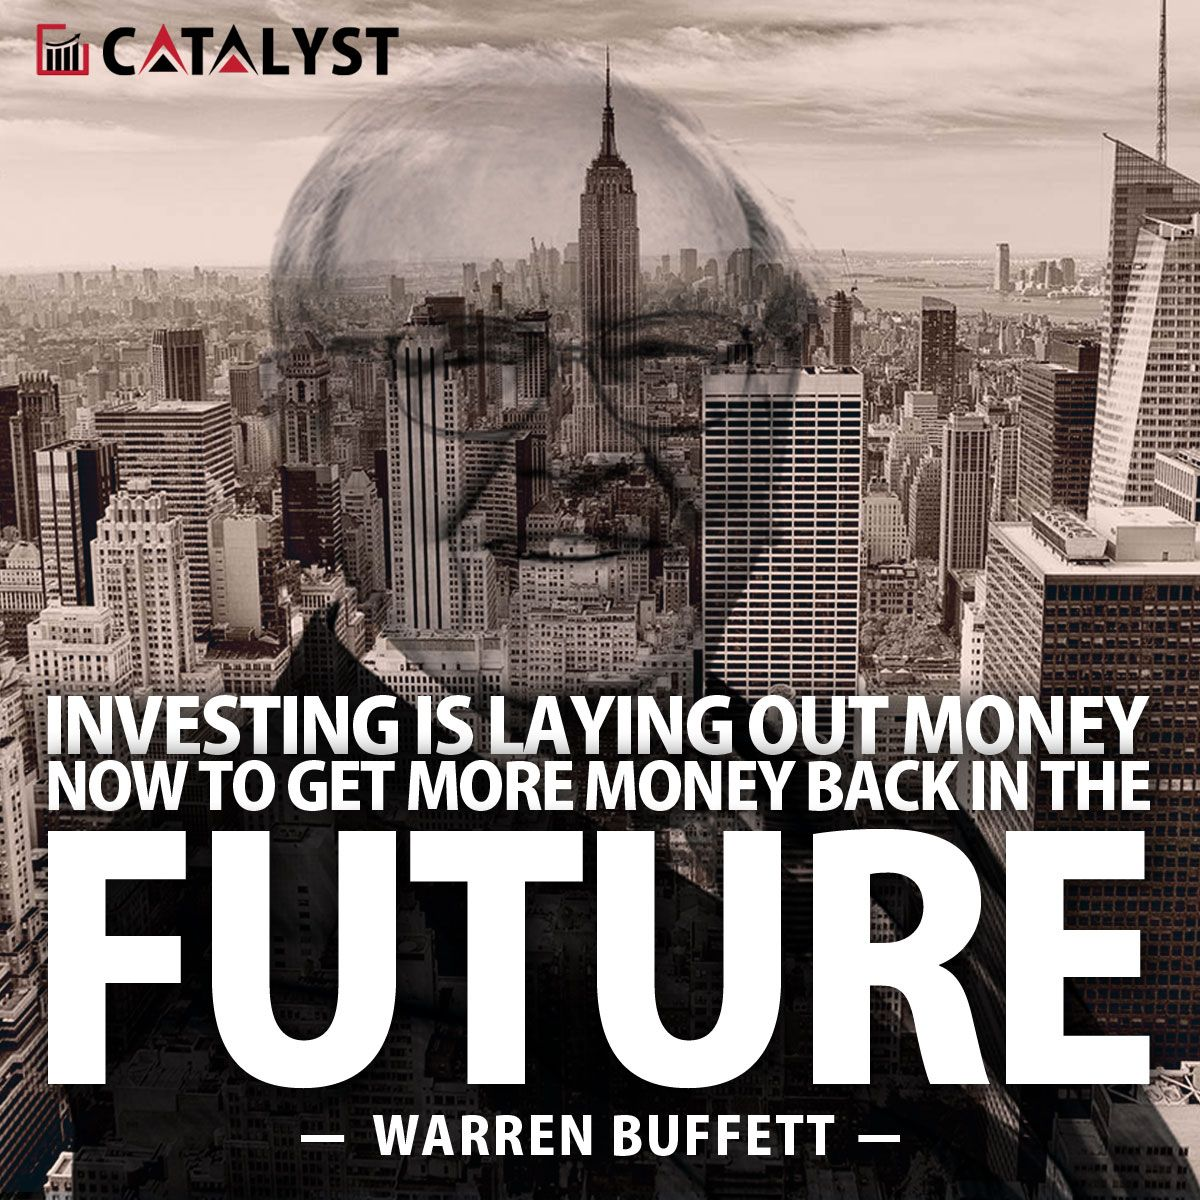 Warren buffett investing is laying out now to get more money back warren buffett investing is laying out now to warren buffettdo it yourselfinvestinginspire solutioingenieria Images